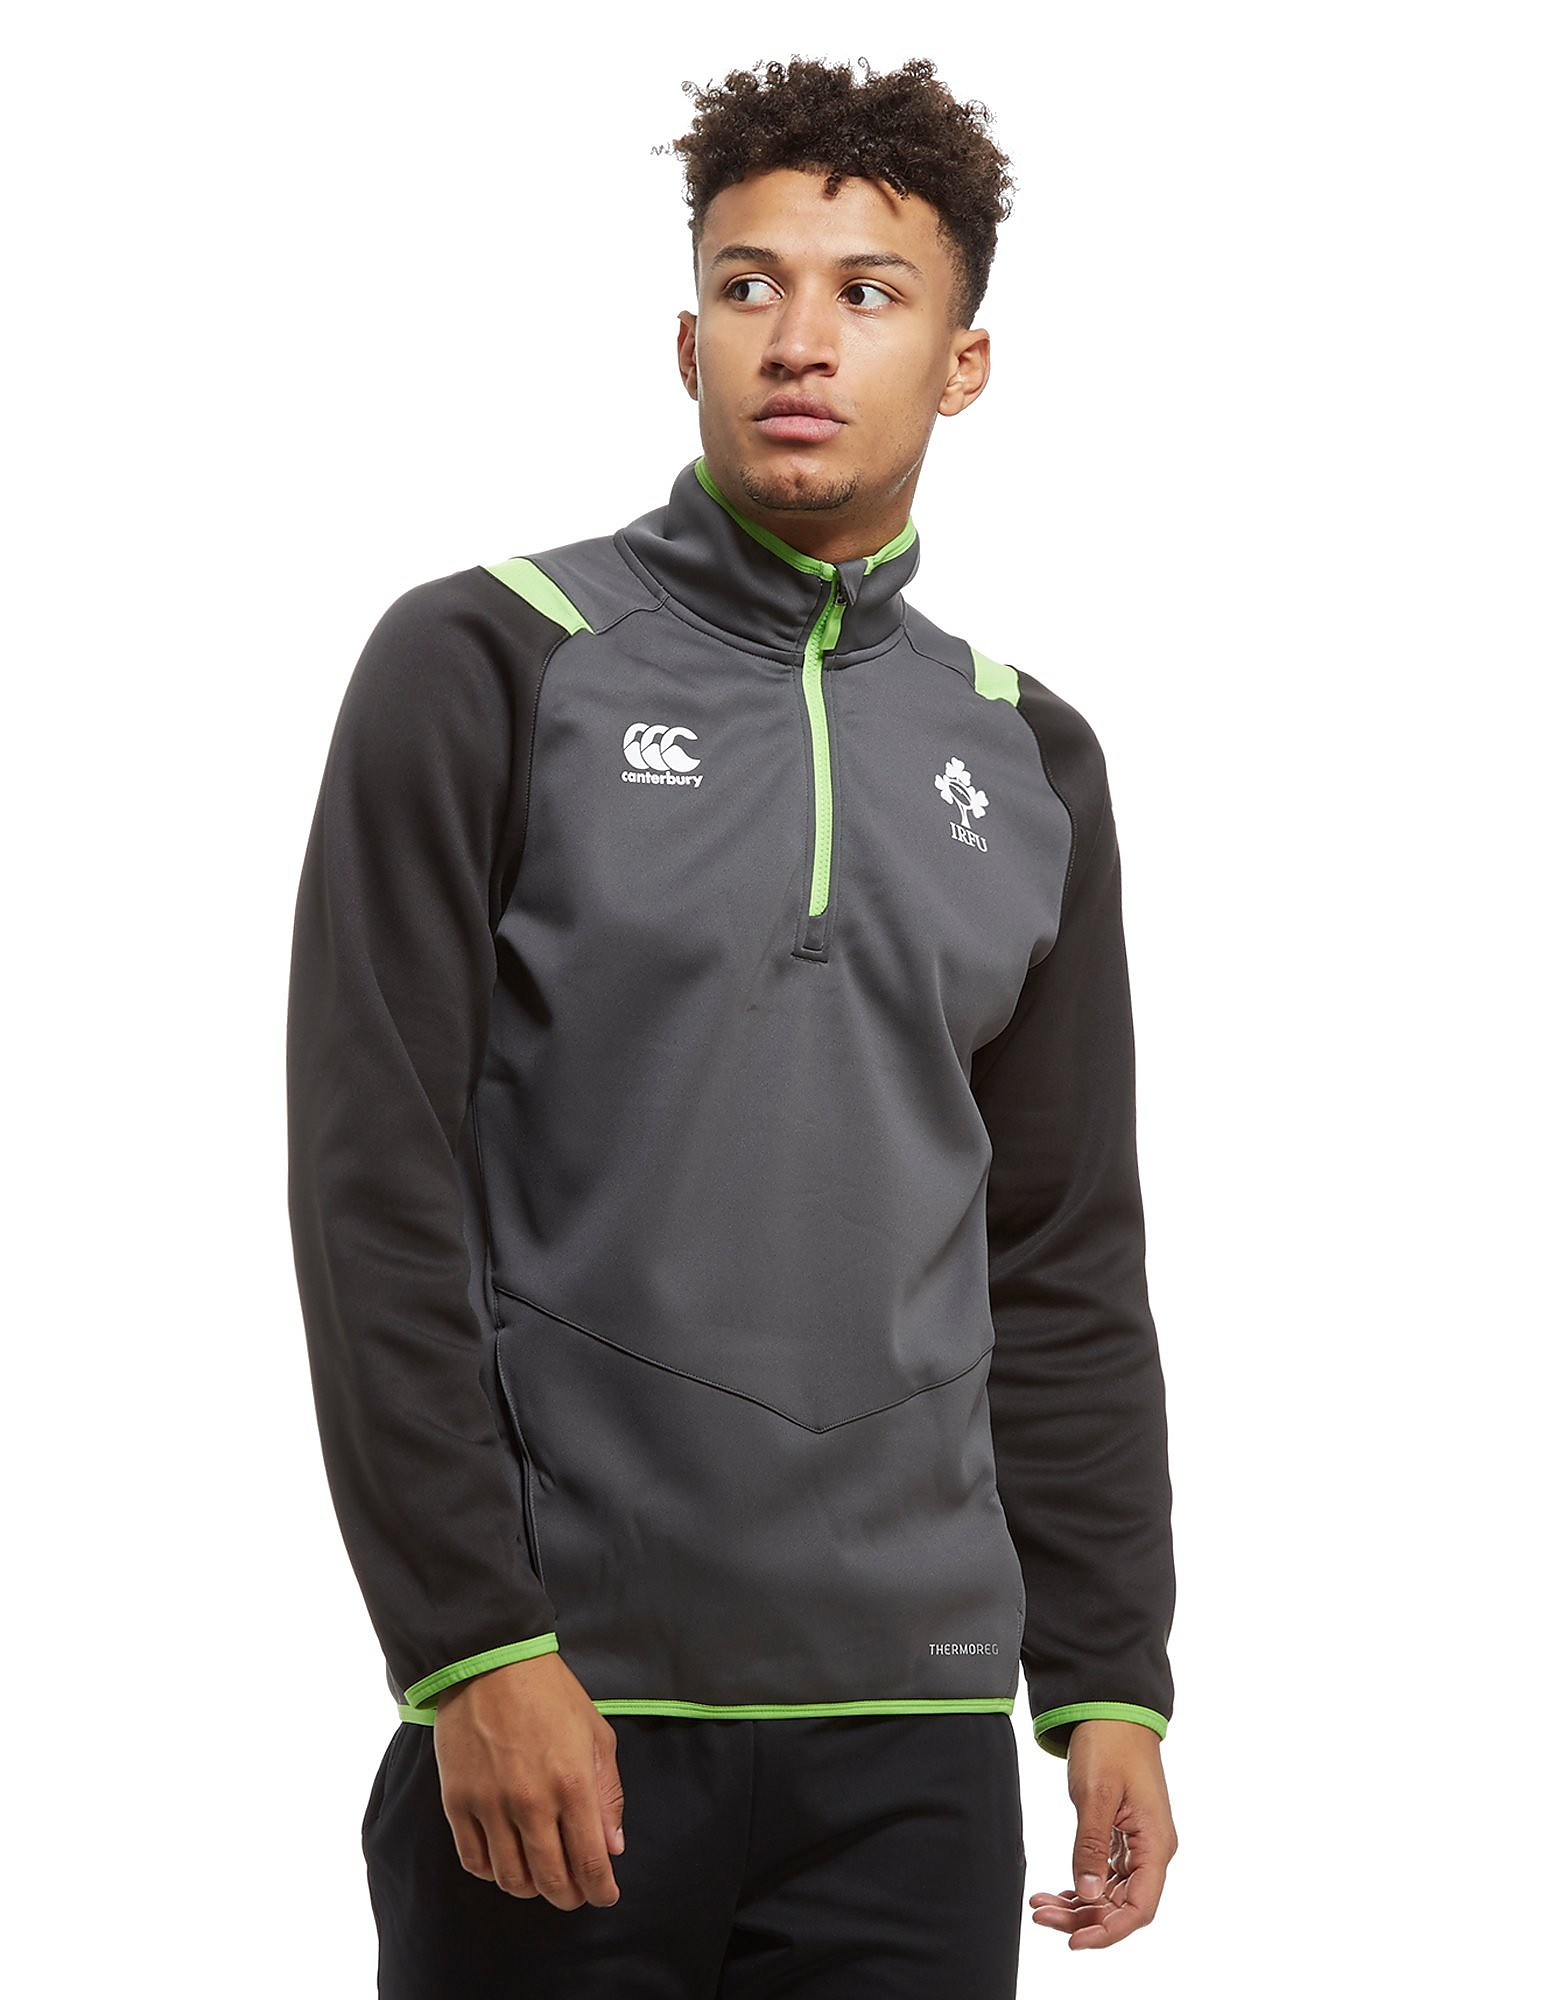 Canterbury Ireland RFU ThermoReg Half Zip Top